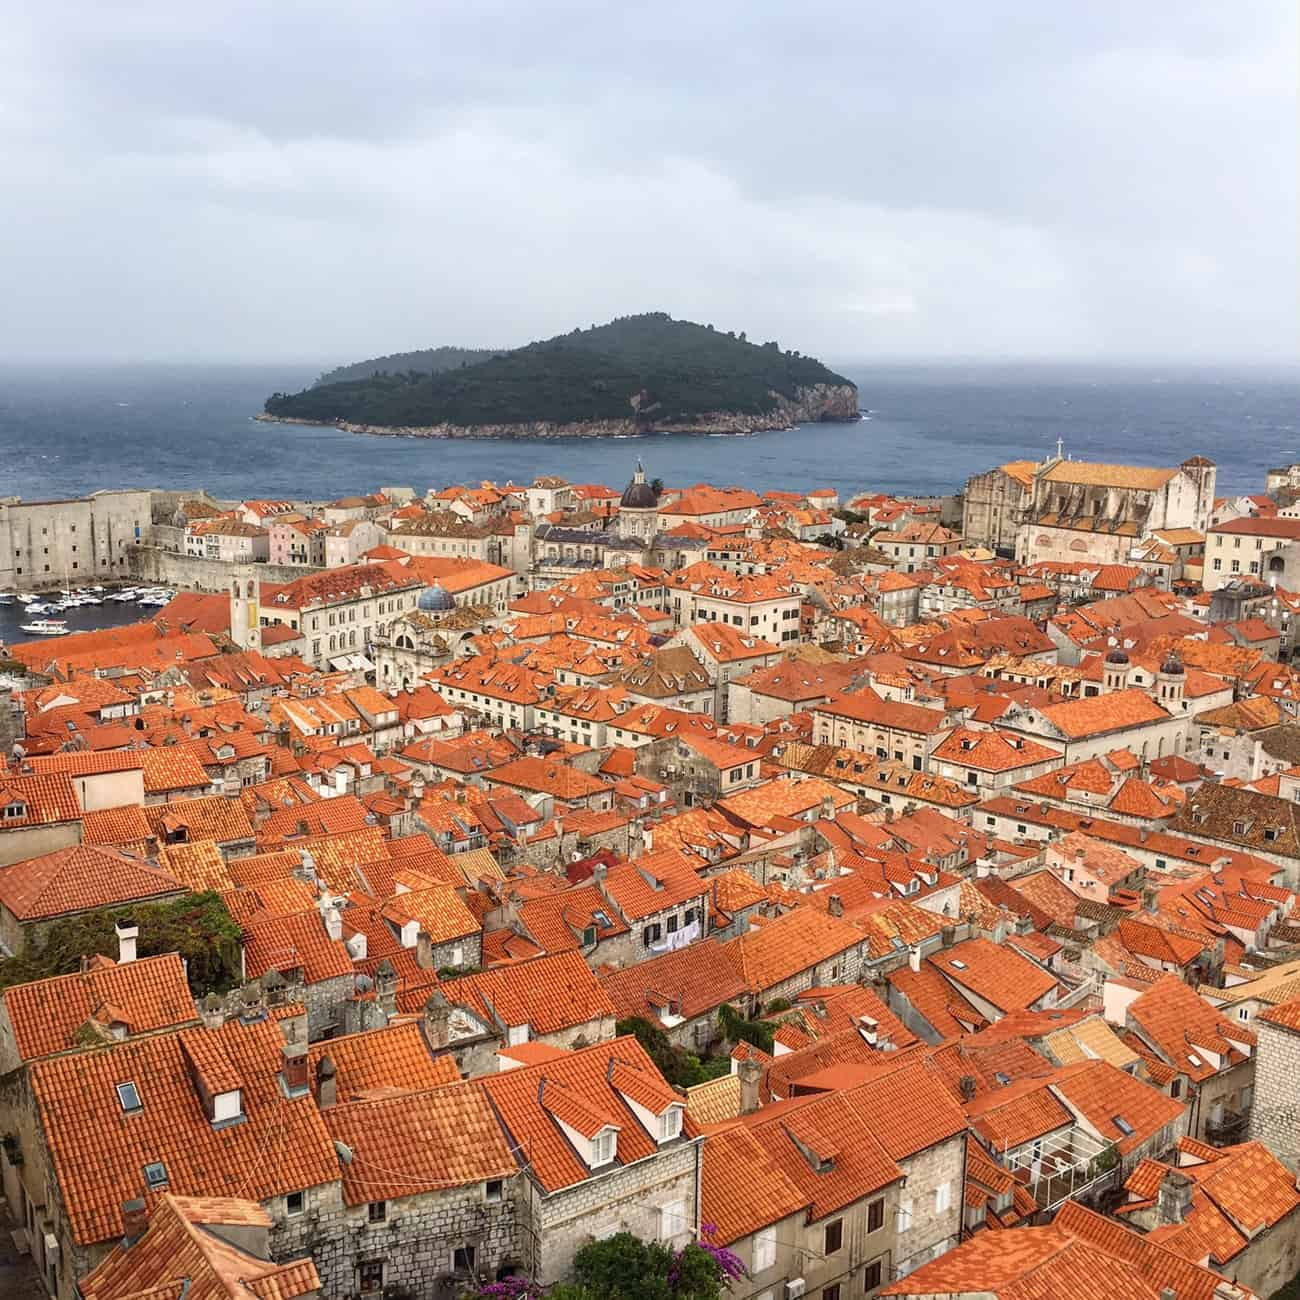 Worst hostel in Dubrovnik